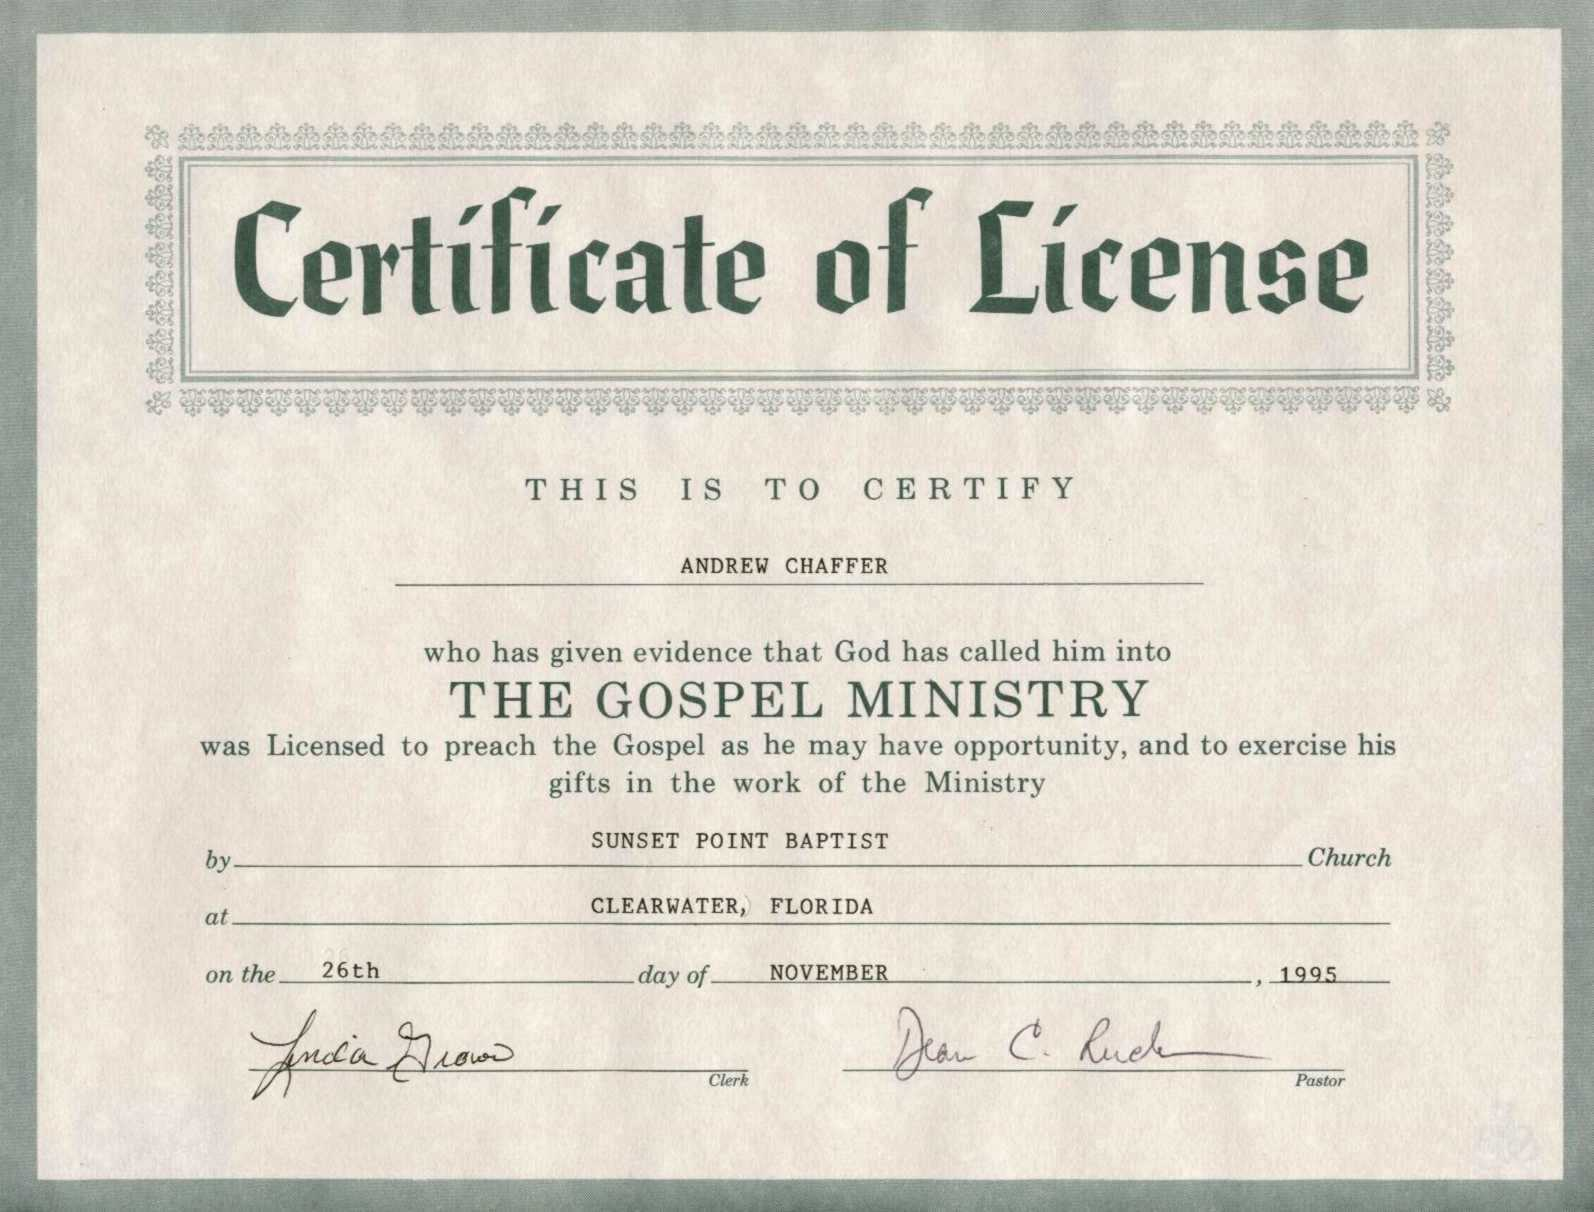 30 Minister License Certificate Template   Pryncepality Inside Certificate Of License Template